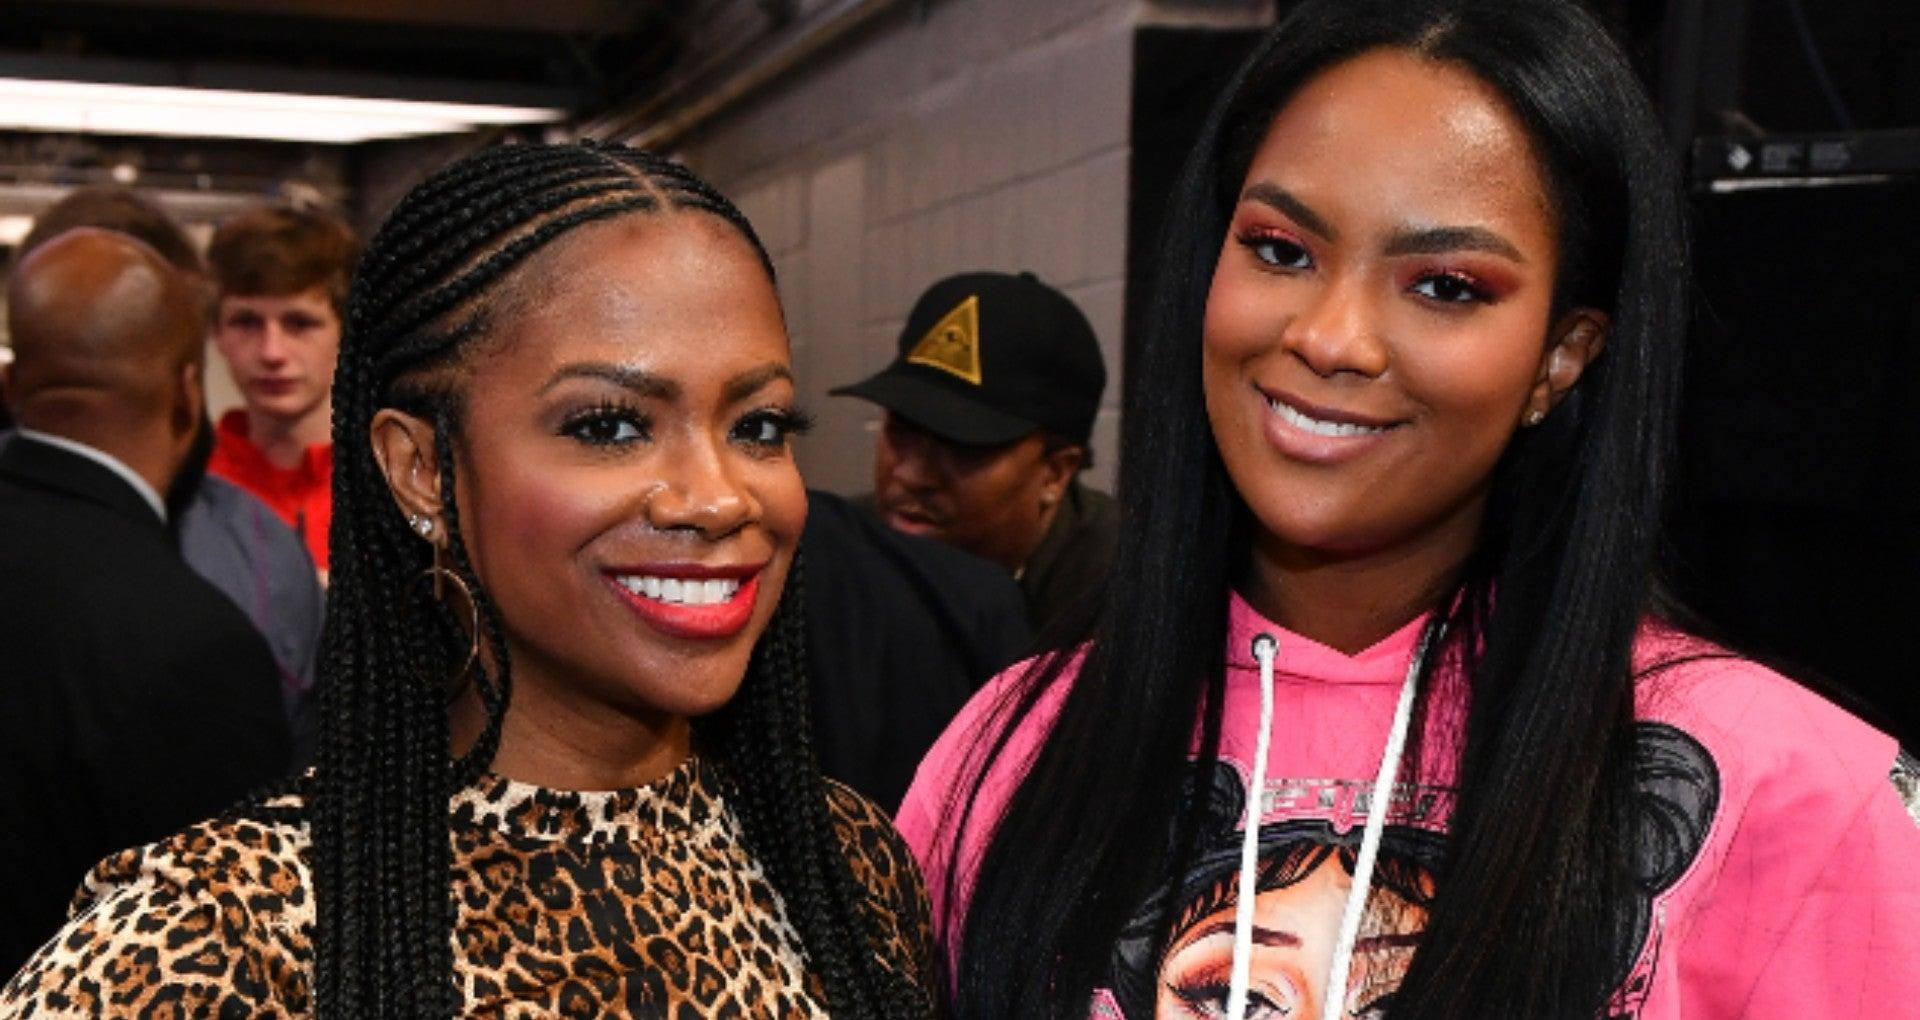 Kandi Burruss Makes Fans Excited With This 'Speak On It' Episode Featuring Kenya Moore